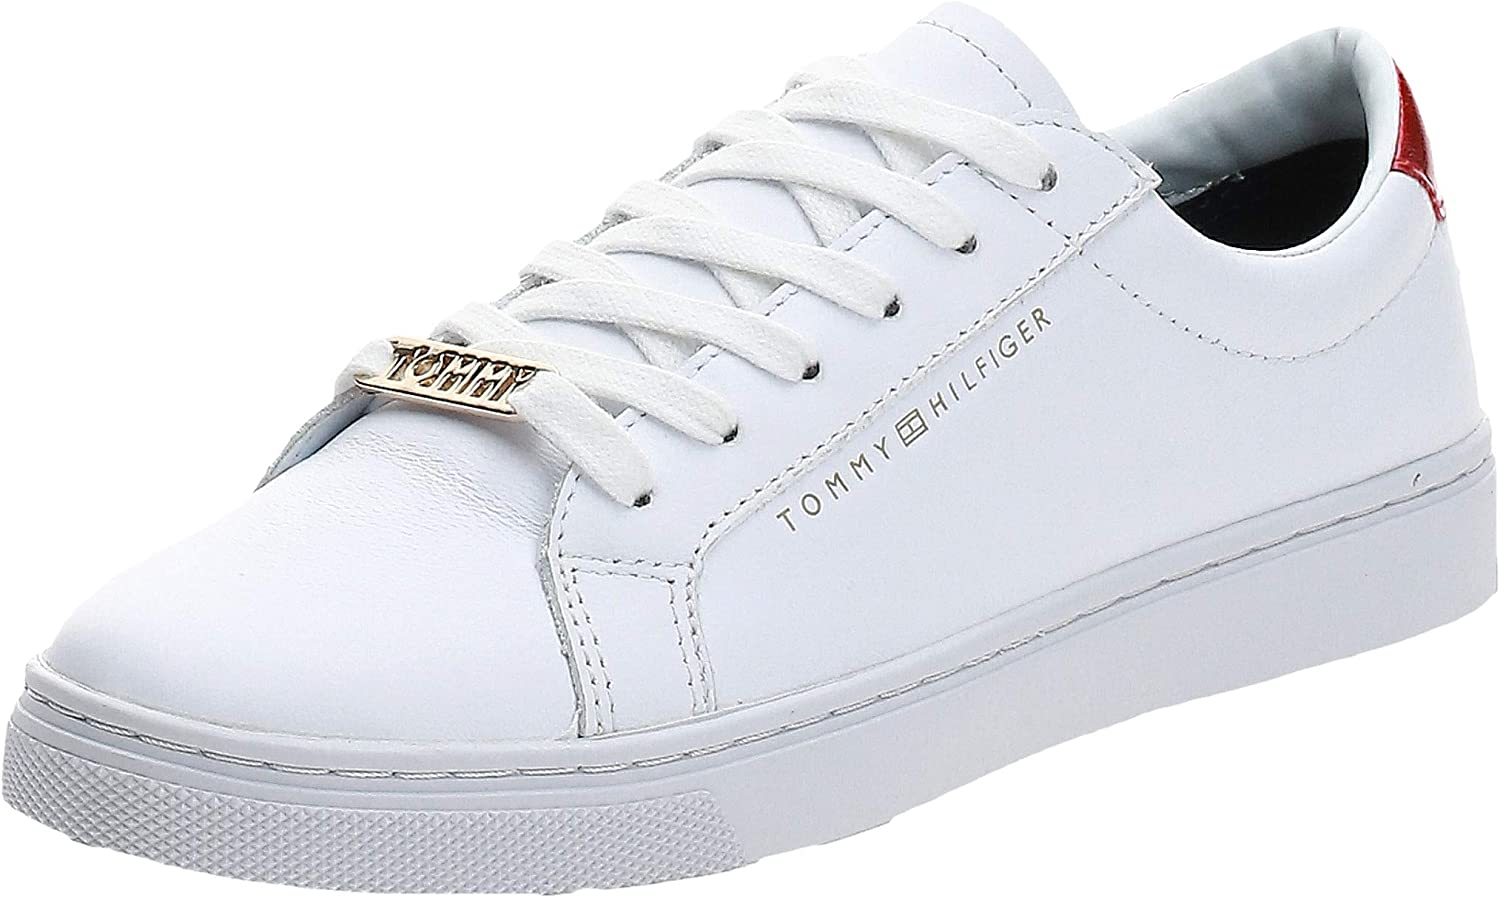 TOMMY HILFIGER KIDS Unisexe Chaussures Shoes Chaussure Lacée Sneaker Taille 31